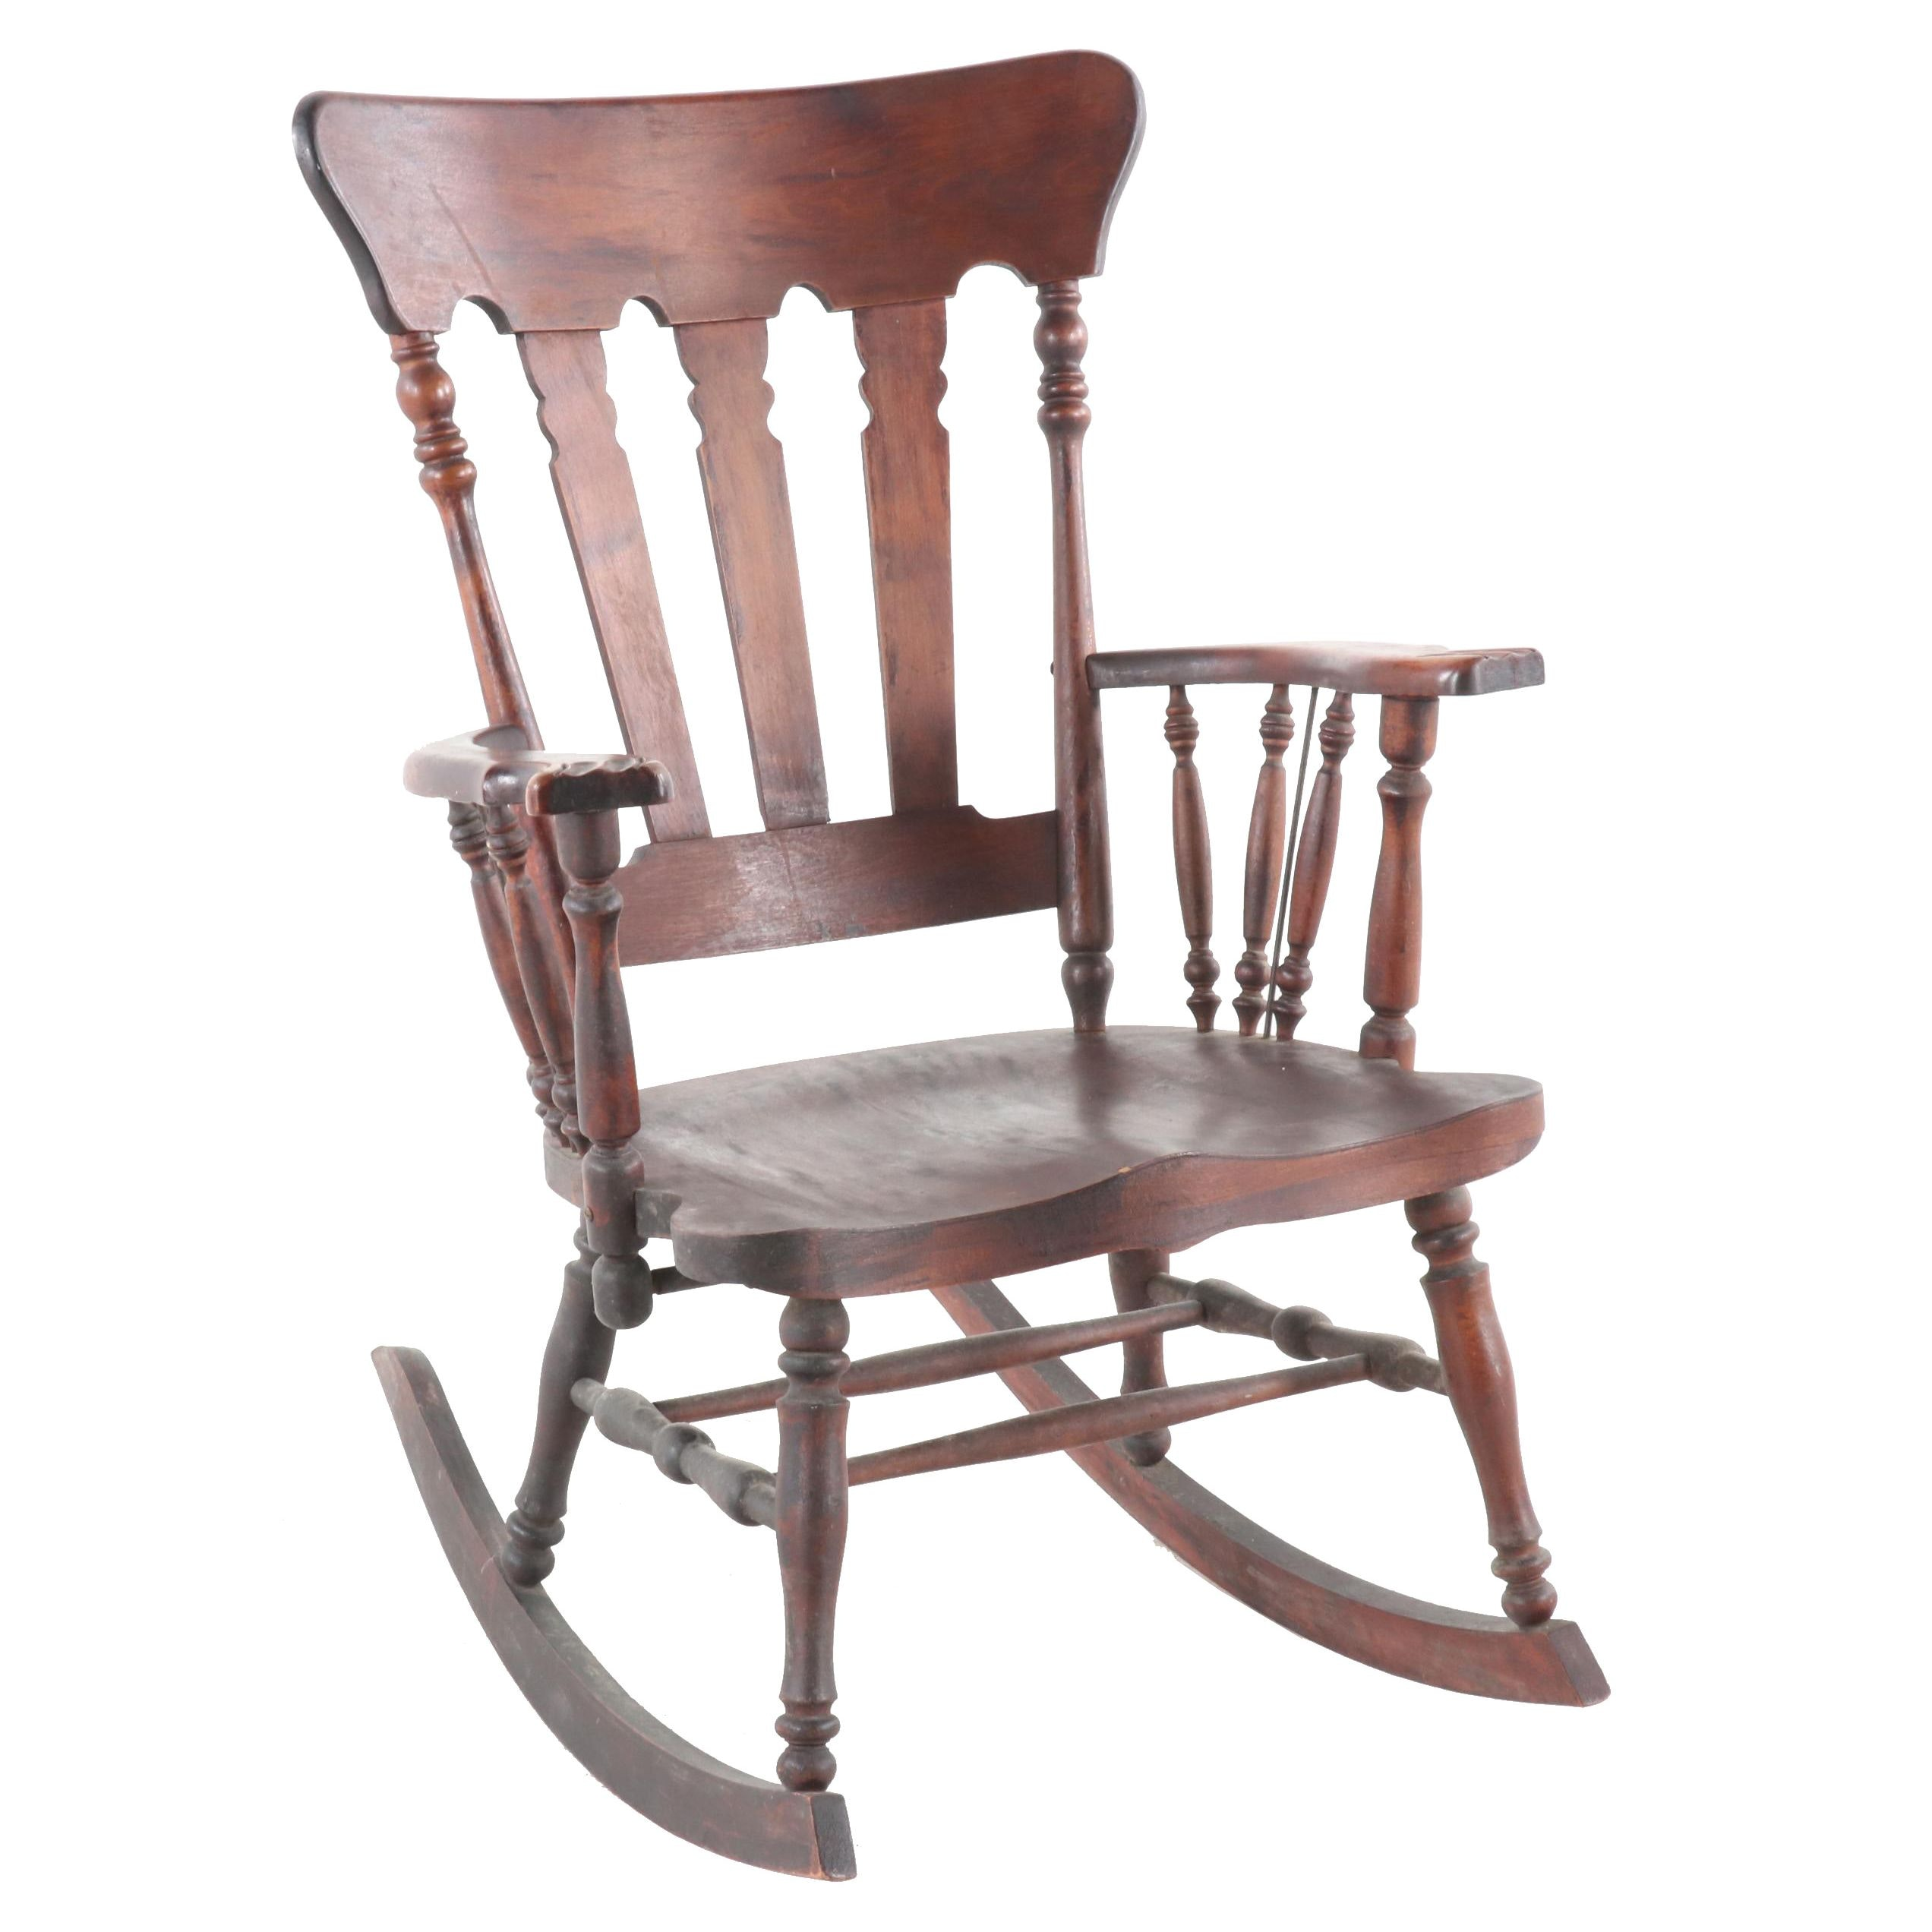 Early American Style Mahogany Rocking Chair, Early 20th Century